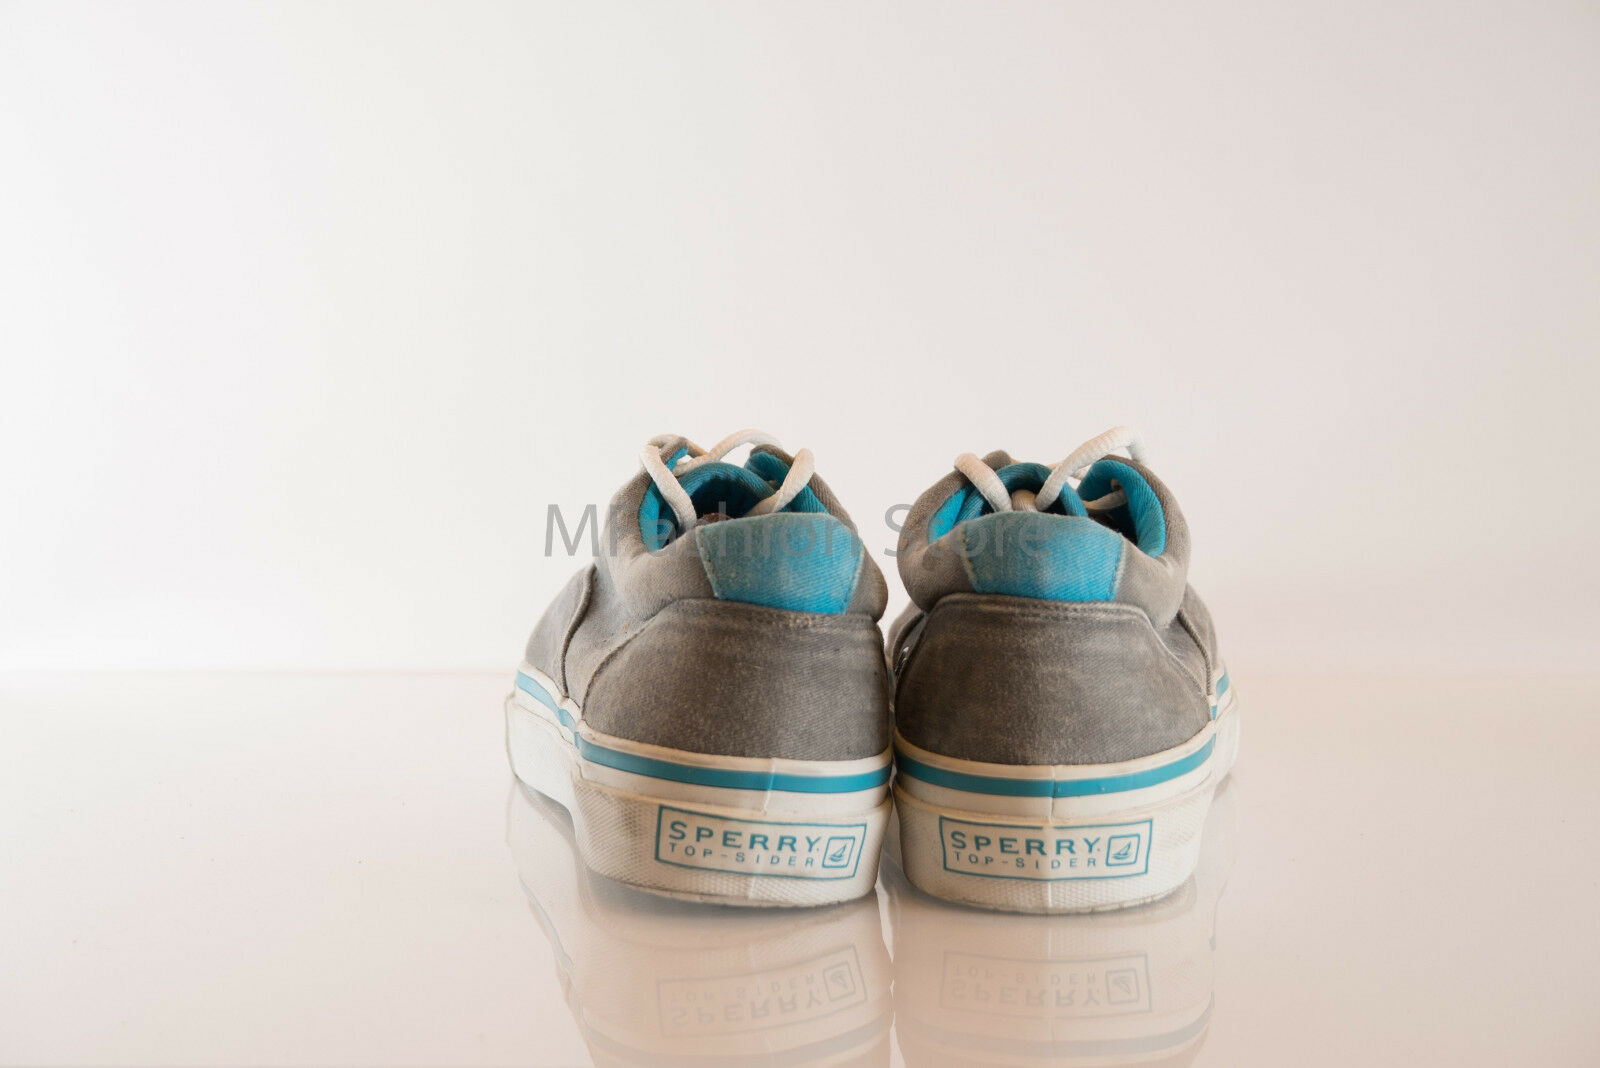 Sperry Gray Cotton Upper Lace Uomo Up L12-CH241 Uomo Lace Shoe Size US 8M Pre Owned Great 607536